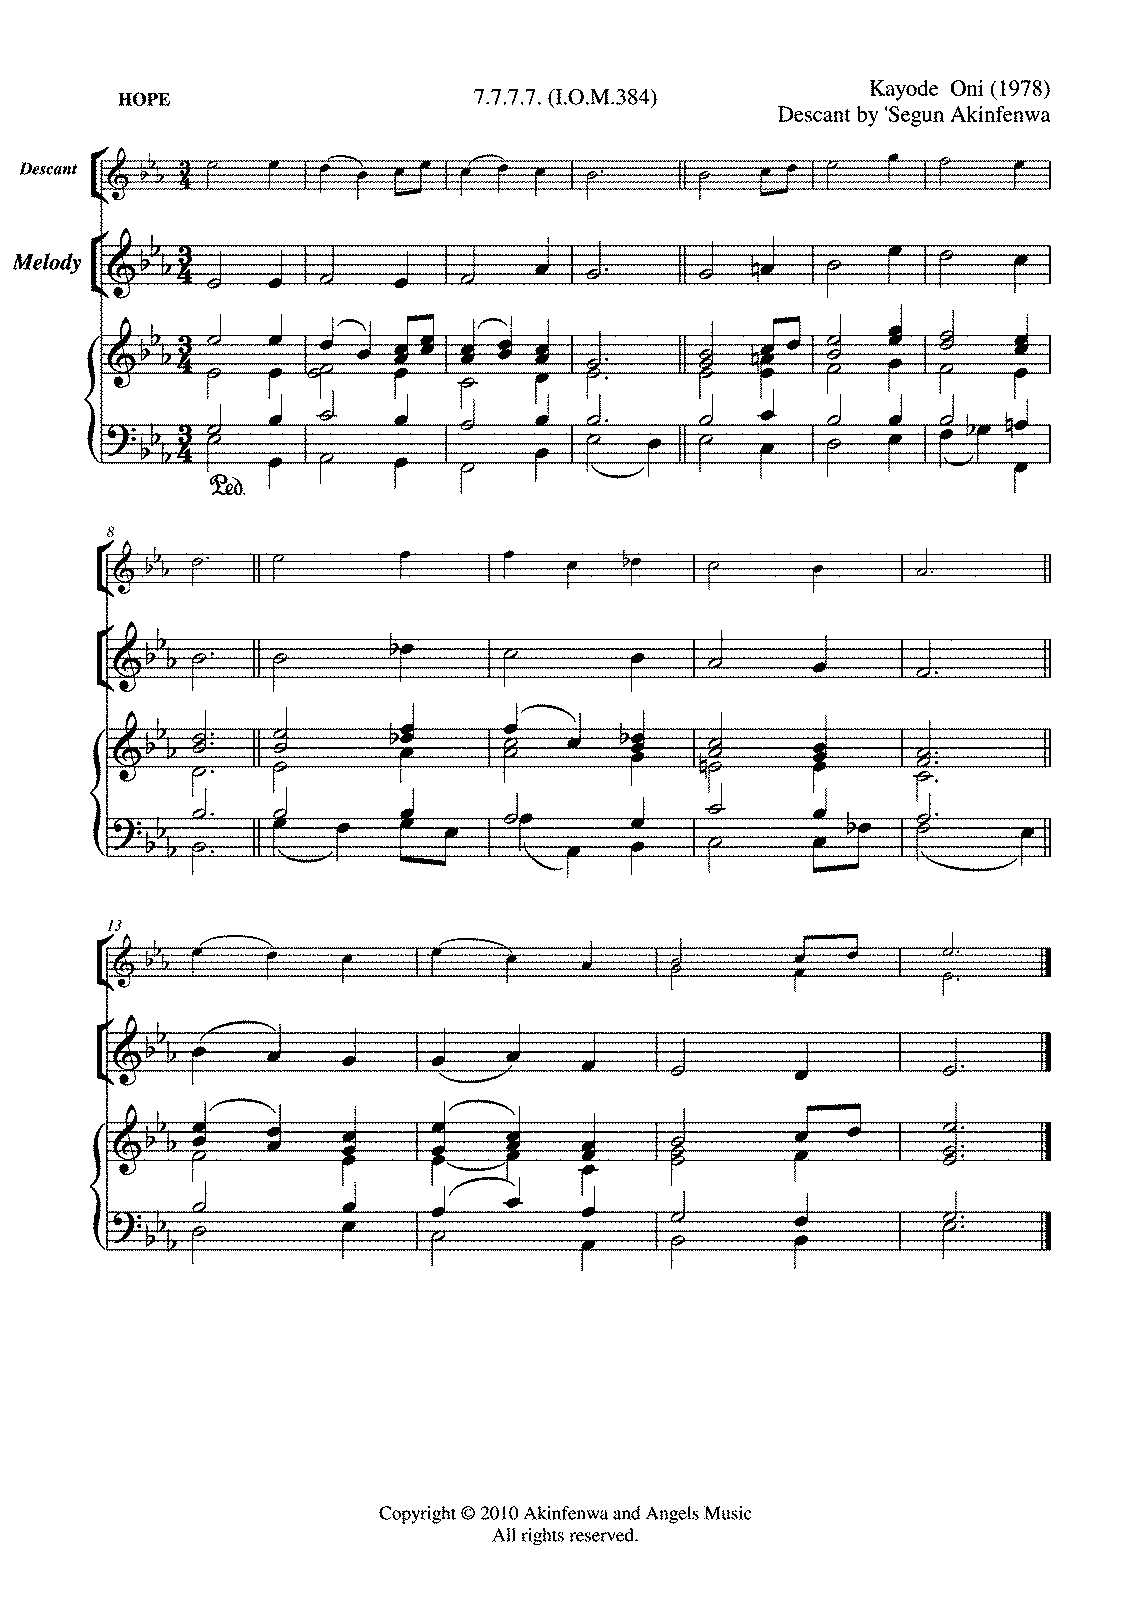 PMLP292361-Hymn tune Hope with descant.pdf